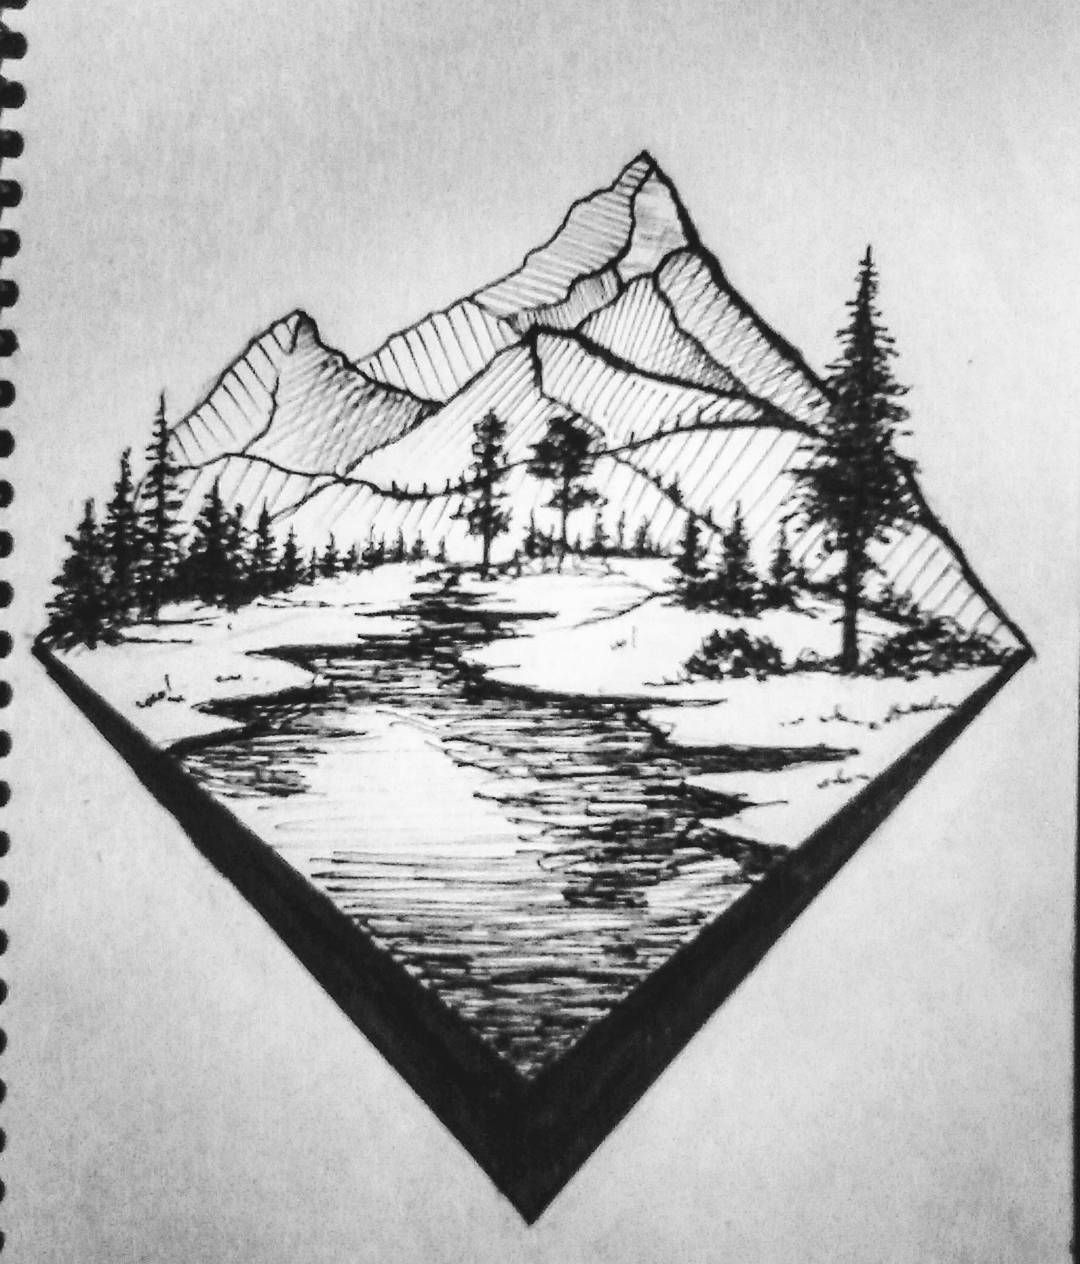 Art Drawing Graphic Paint Illustration Scetch Painting Draw Nature Landscape Forest River Mo Landscape Drawings Landscape Pencil Drawings Drawings